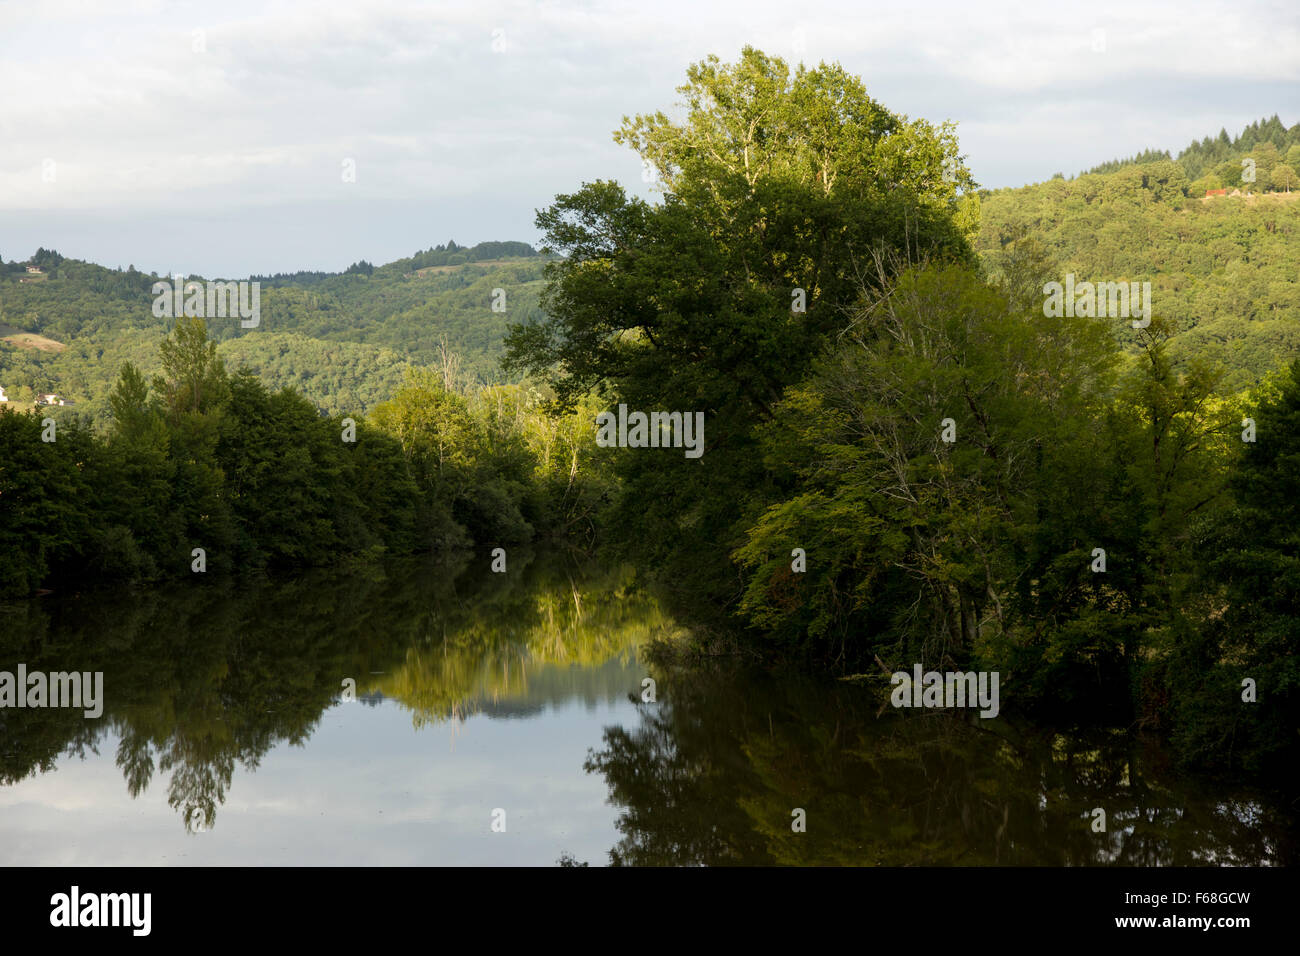 The Dordogyne river at Graces, early morning light Stock Photo